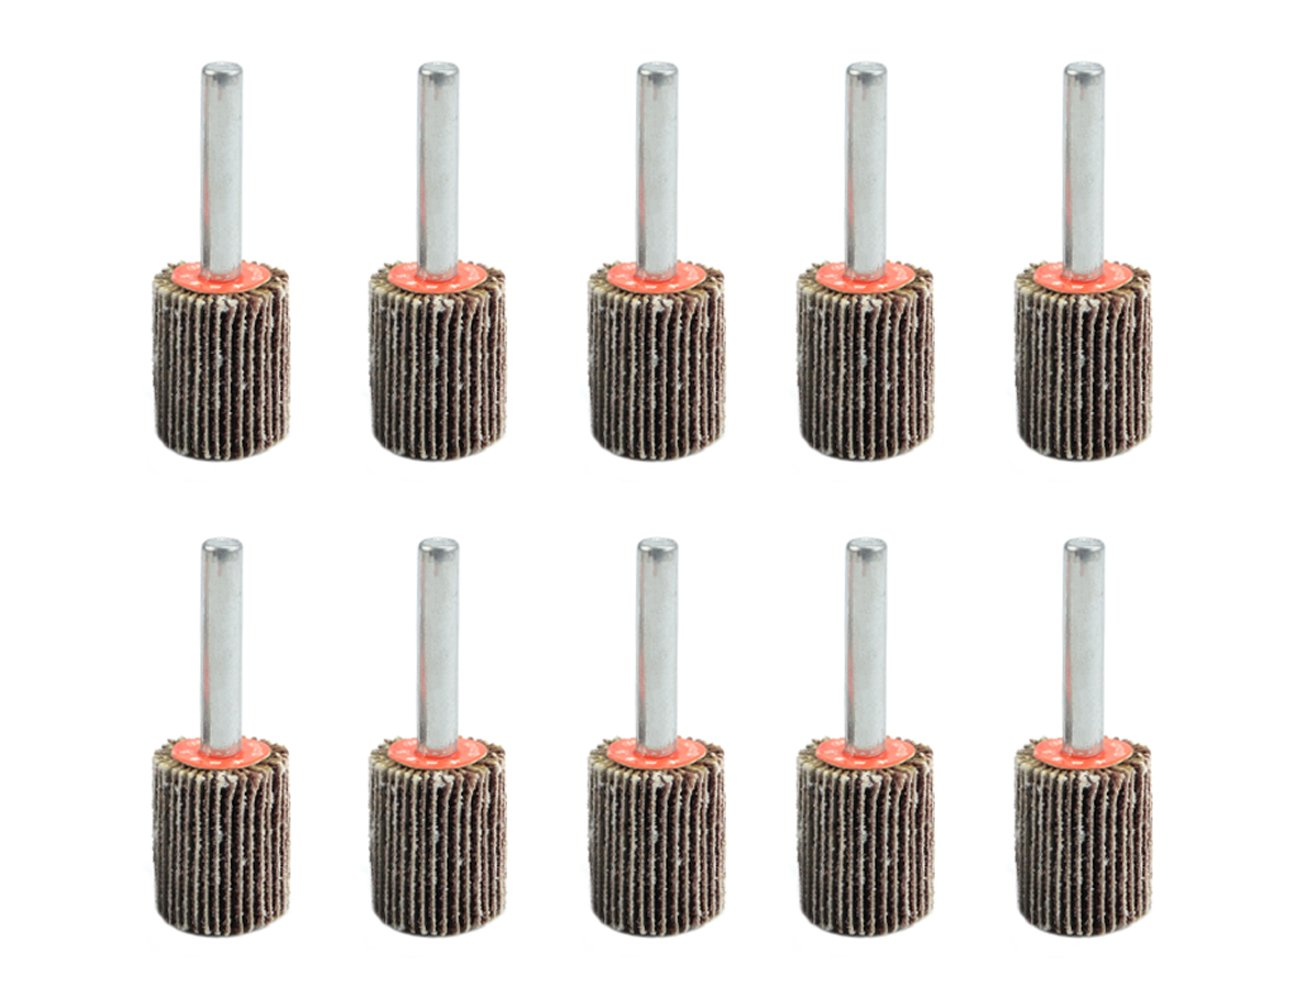 TOVOT 10 PCS 3/4'' by 1'' by 1/4 '' Mounted Flap Wheels with 1/4 '' Mandrel